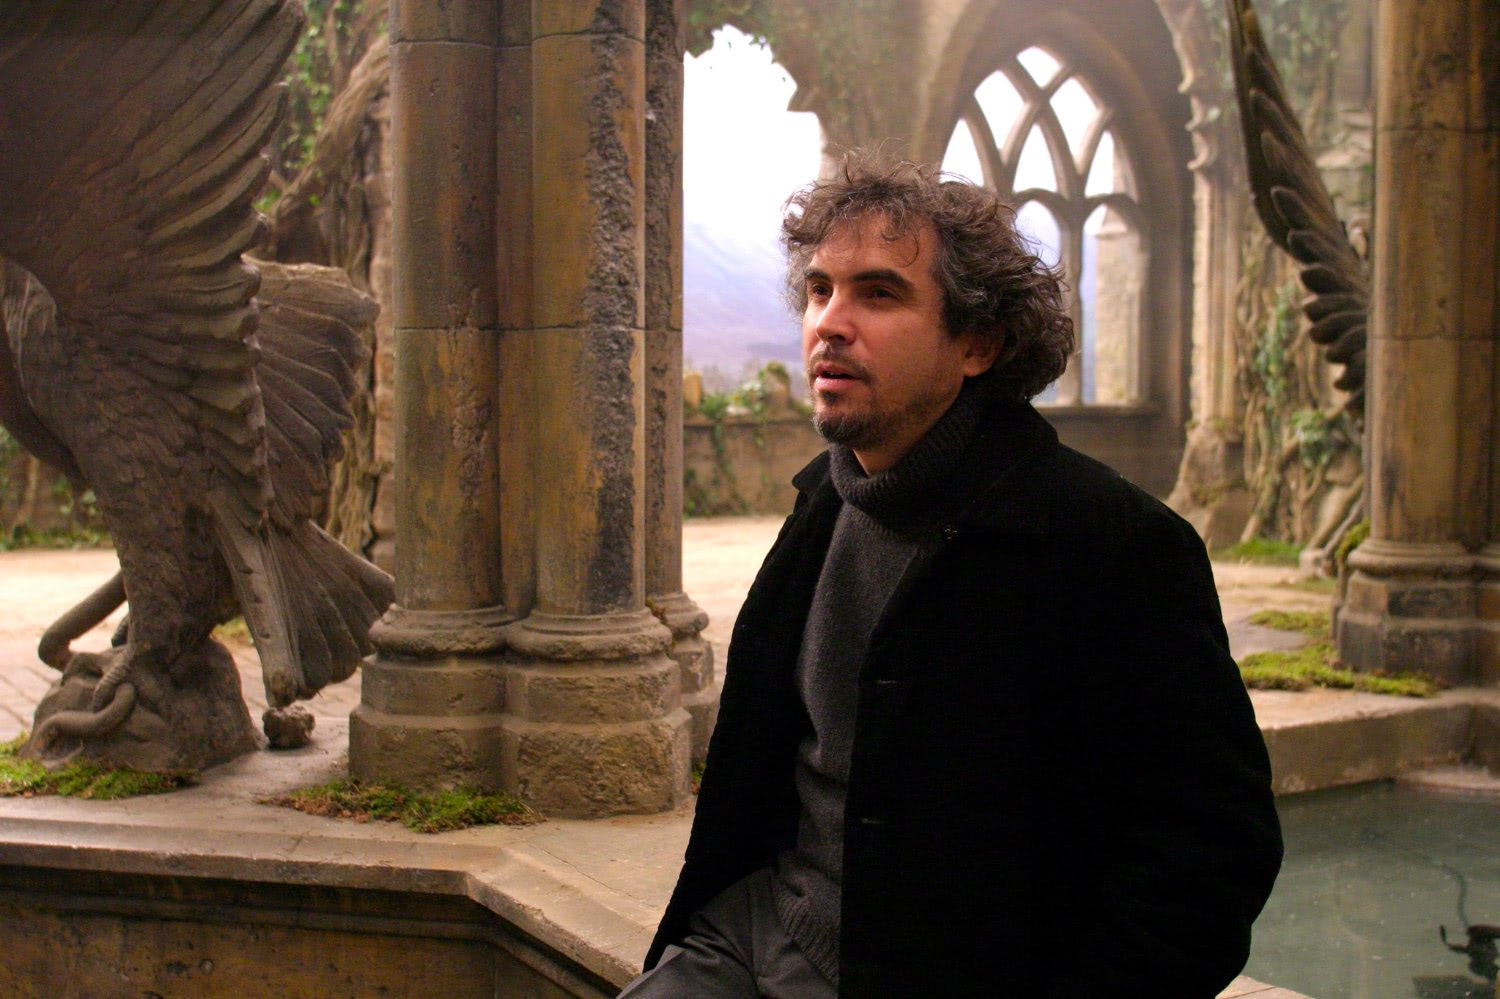 Alfonso Cuarón in the Hogwarts Courtyard